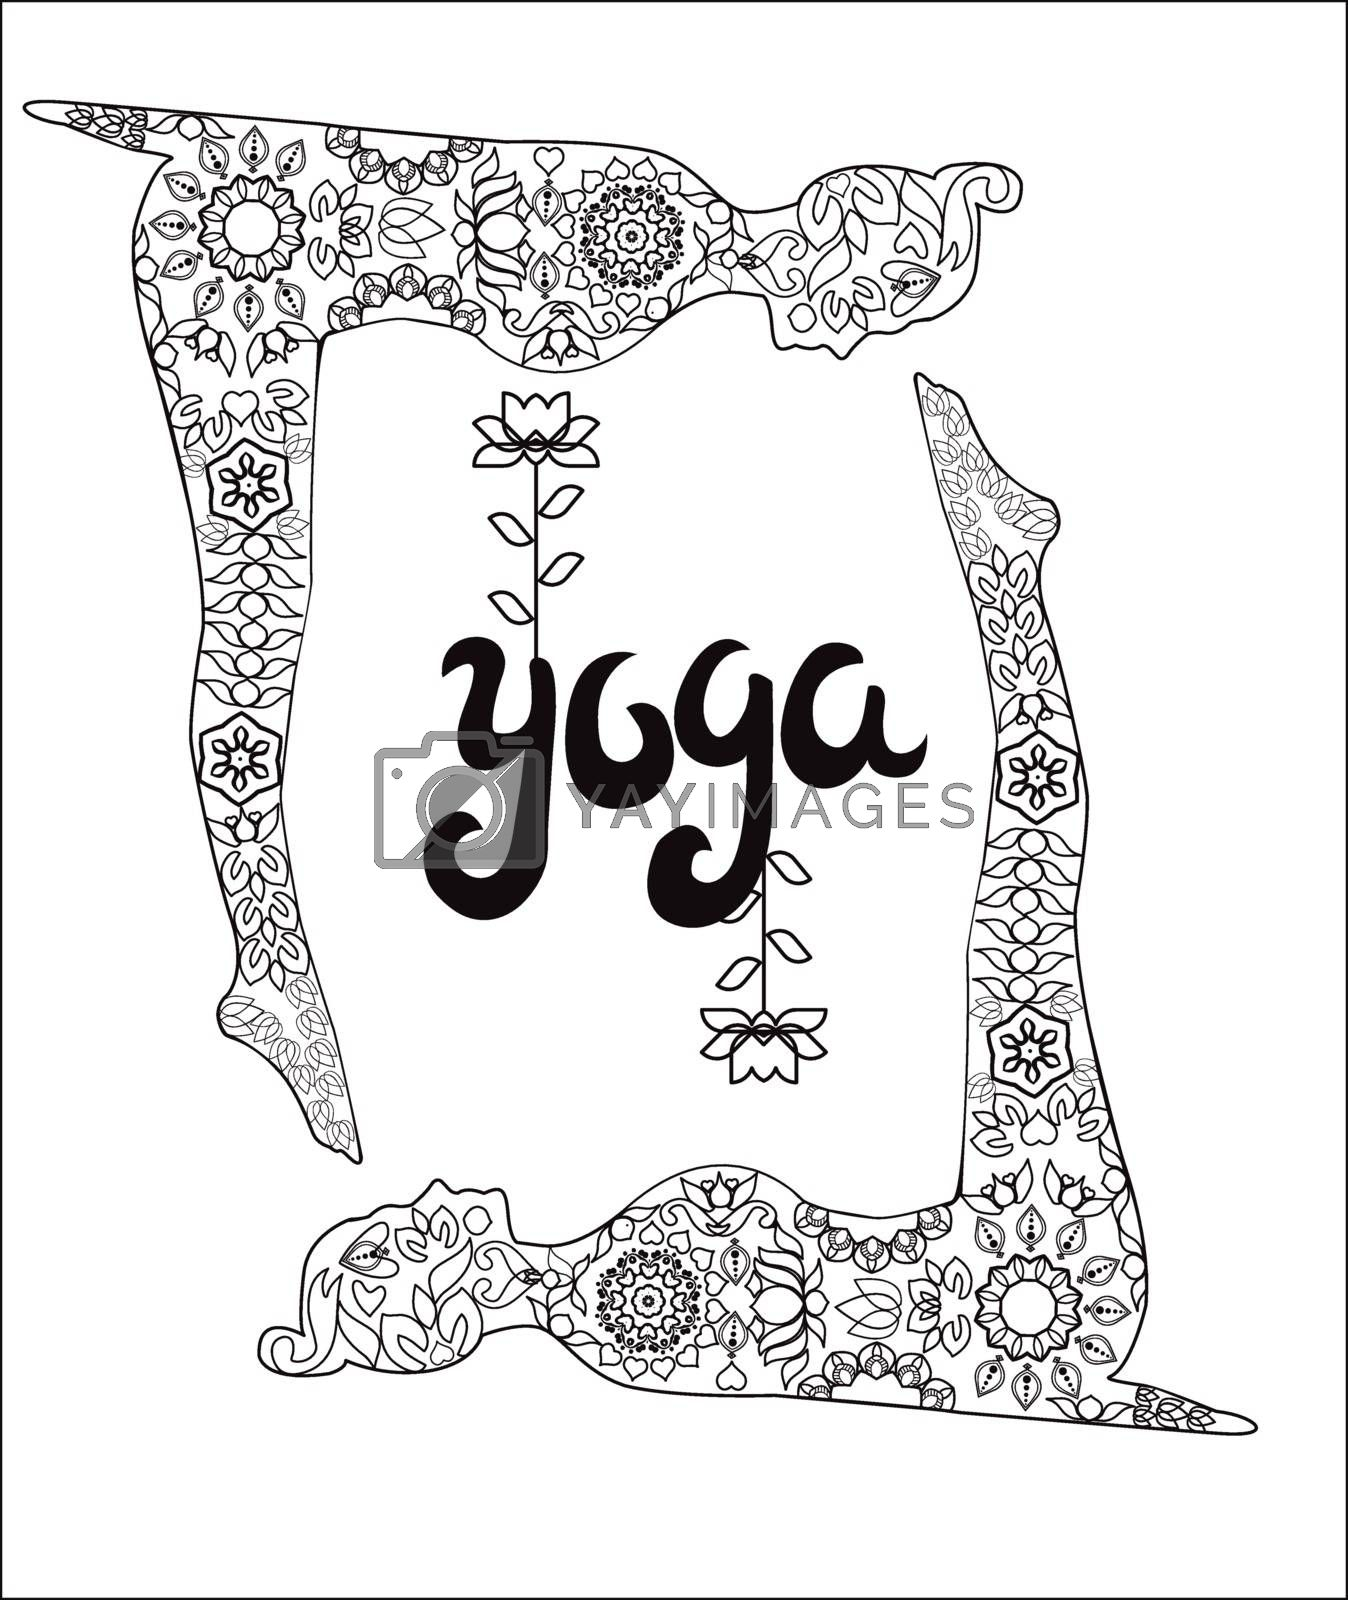 Yoga and meditation coloring book for adults With Yoga Poses, text Yoga and lotus.